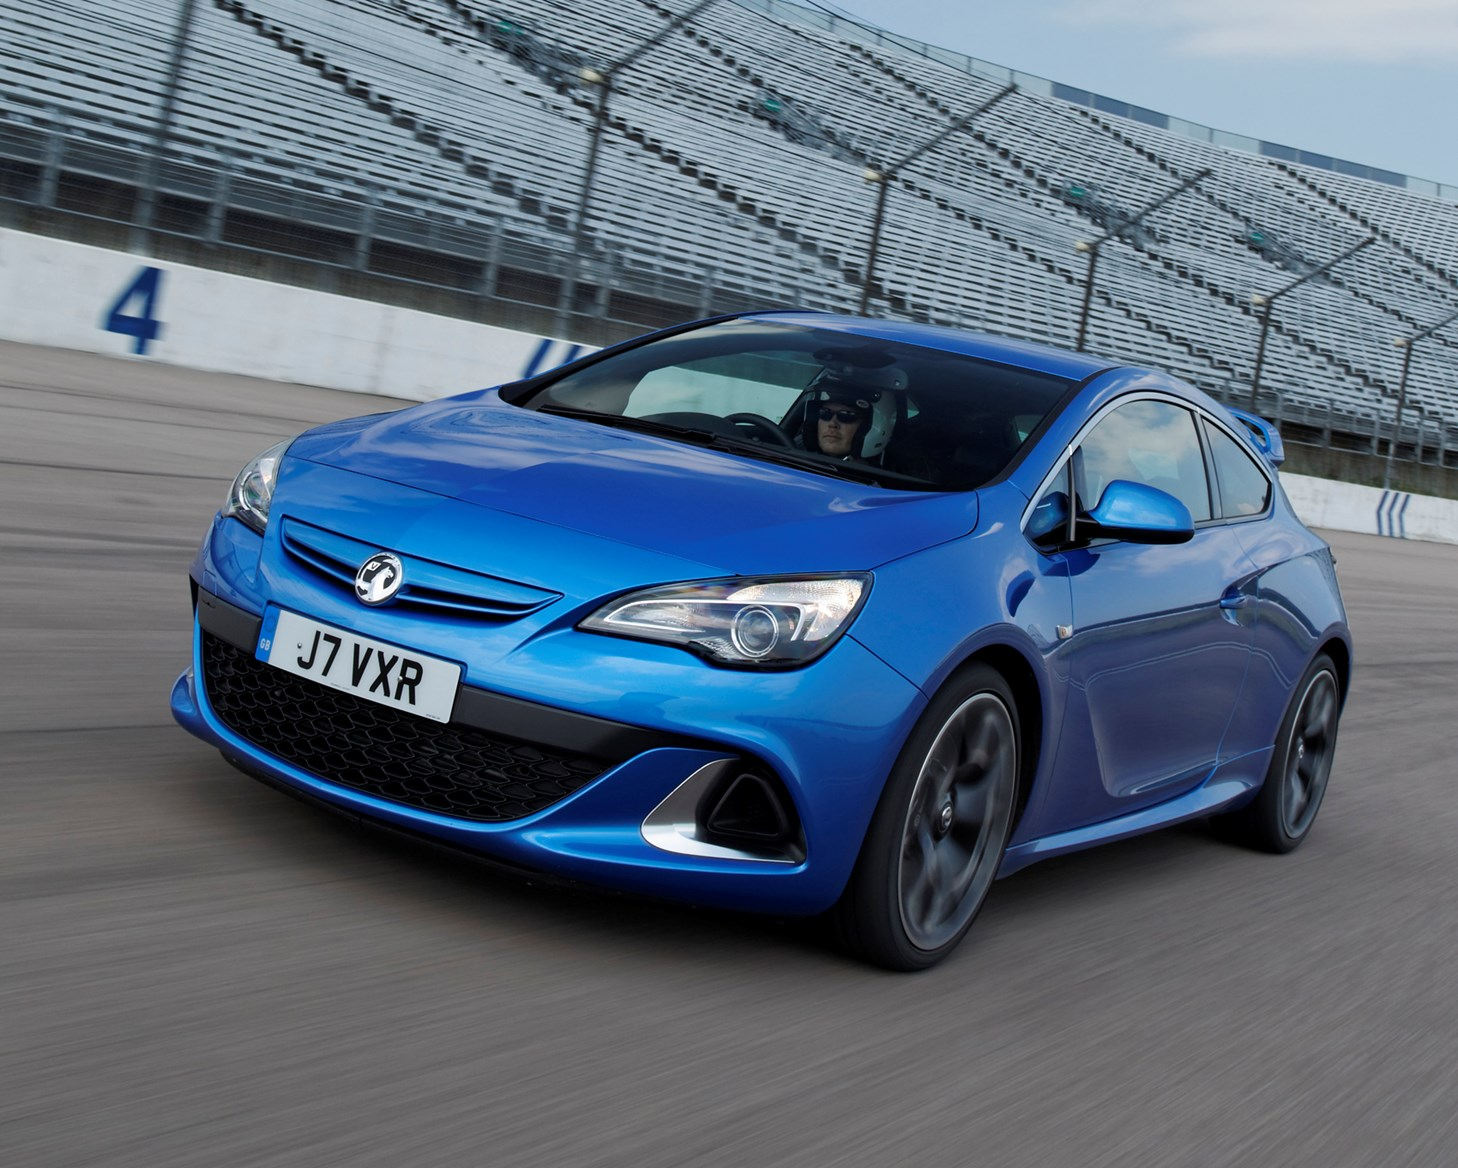 Vauxhall Astra VXR Review (2012 - 2015) | Parkers